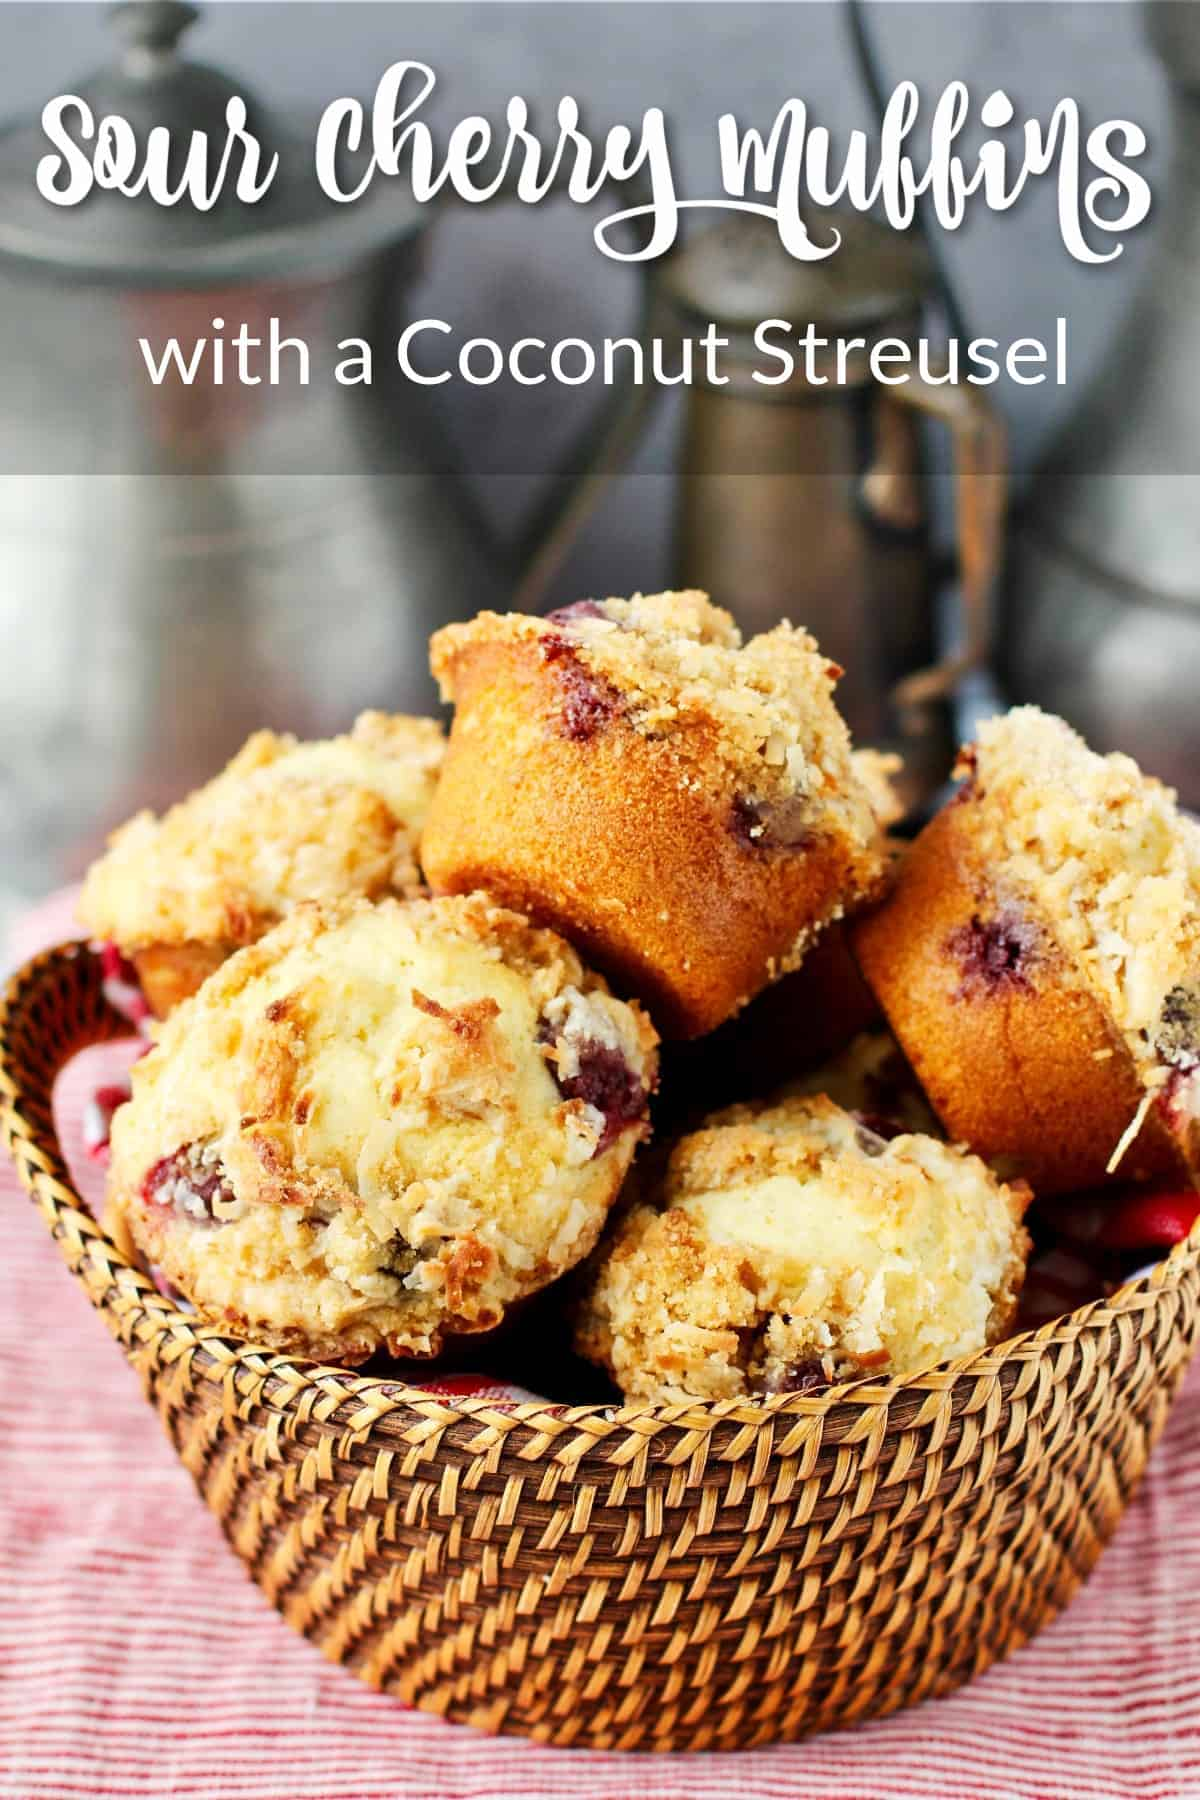 Sour Cherry Muffins with Coconut Streusel